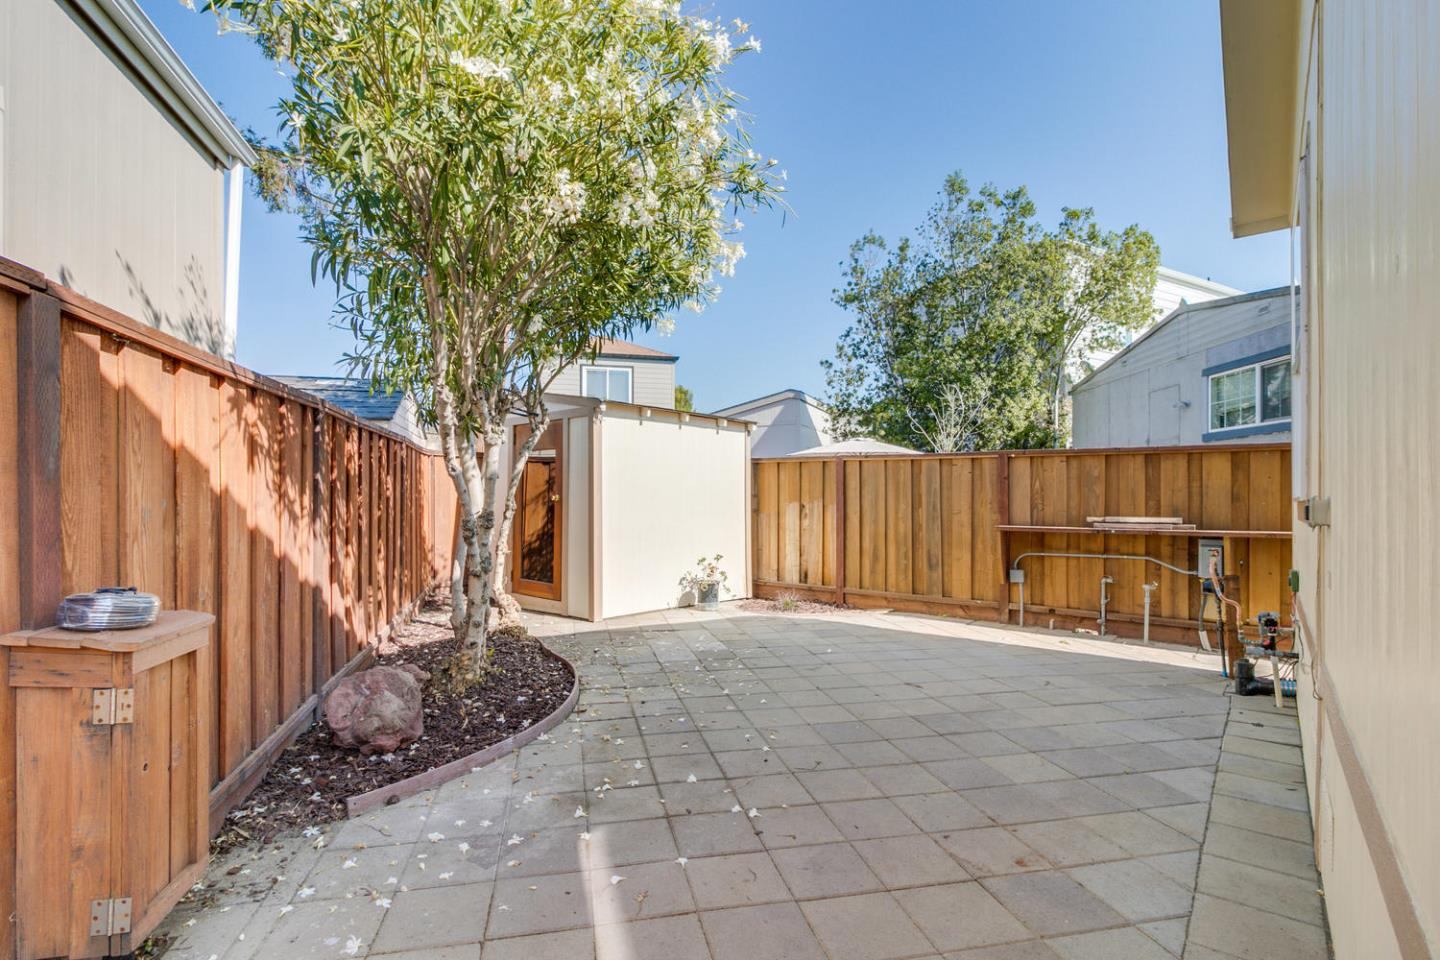 14685 Oka Road Los Gatos, CA 95032 - MLS #: ML81728435